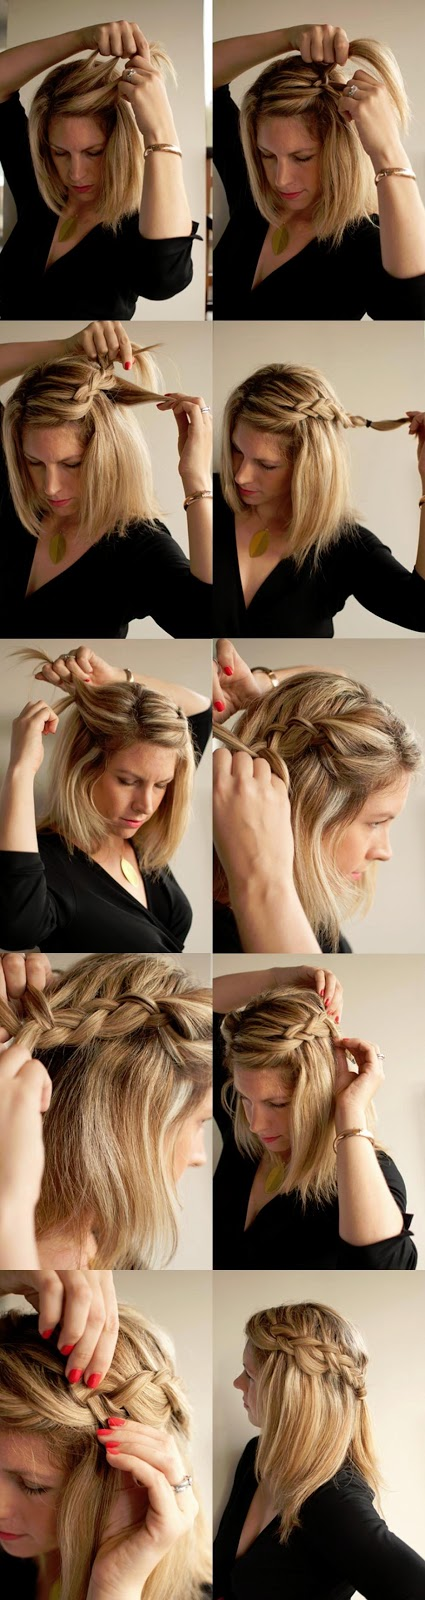 Types Hair Easy And Simple Side Braid Hairstyle